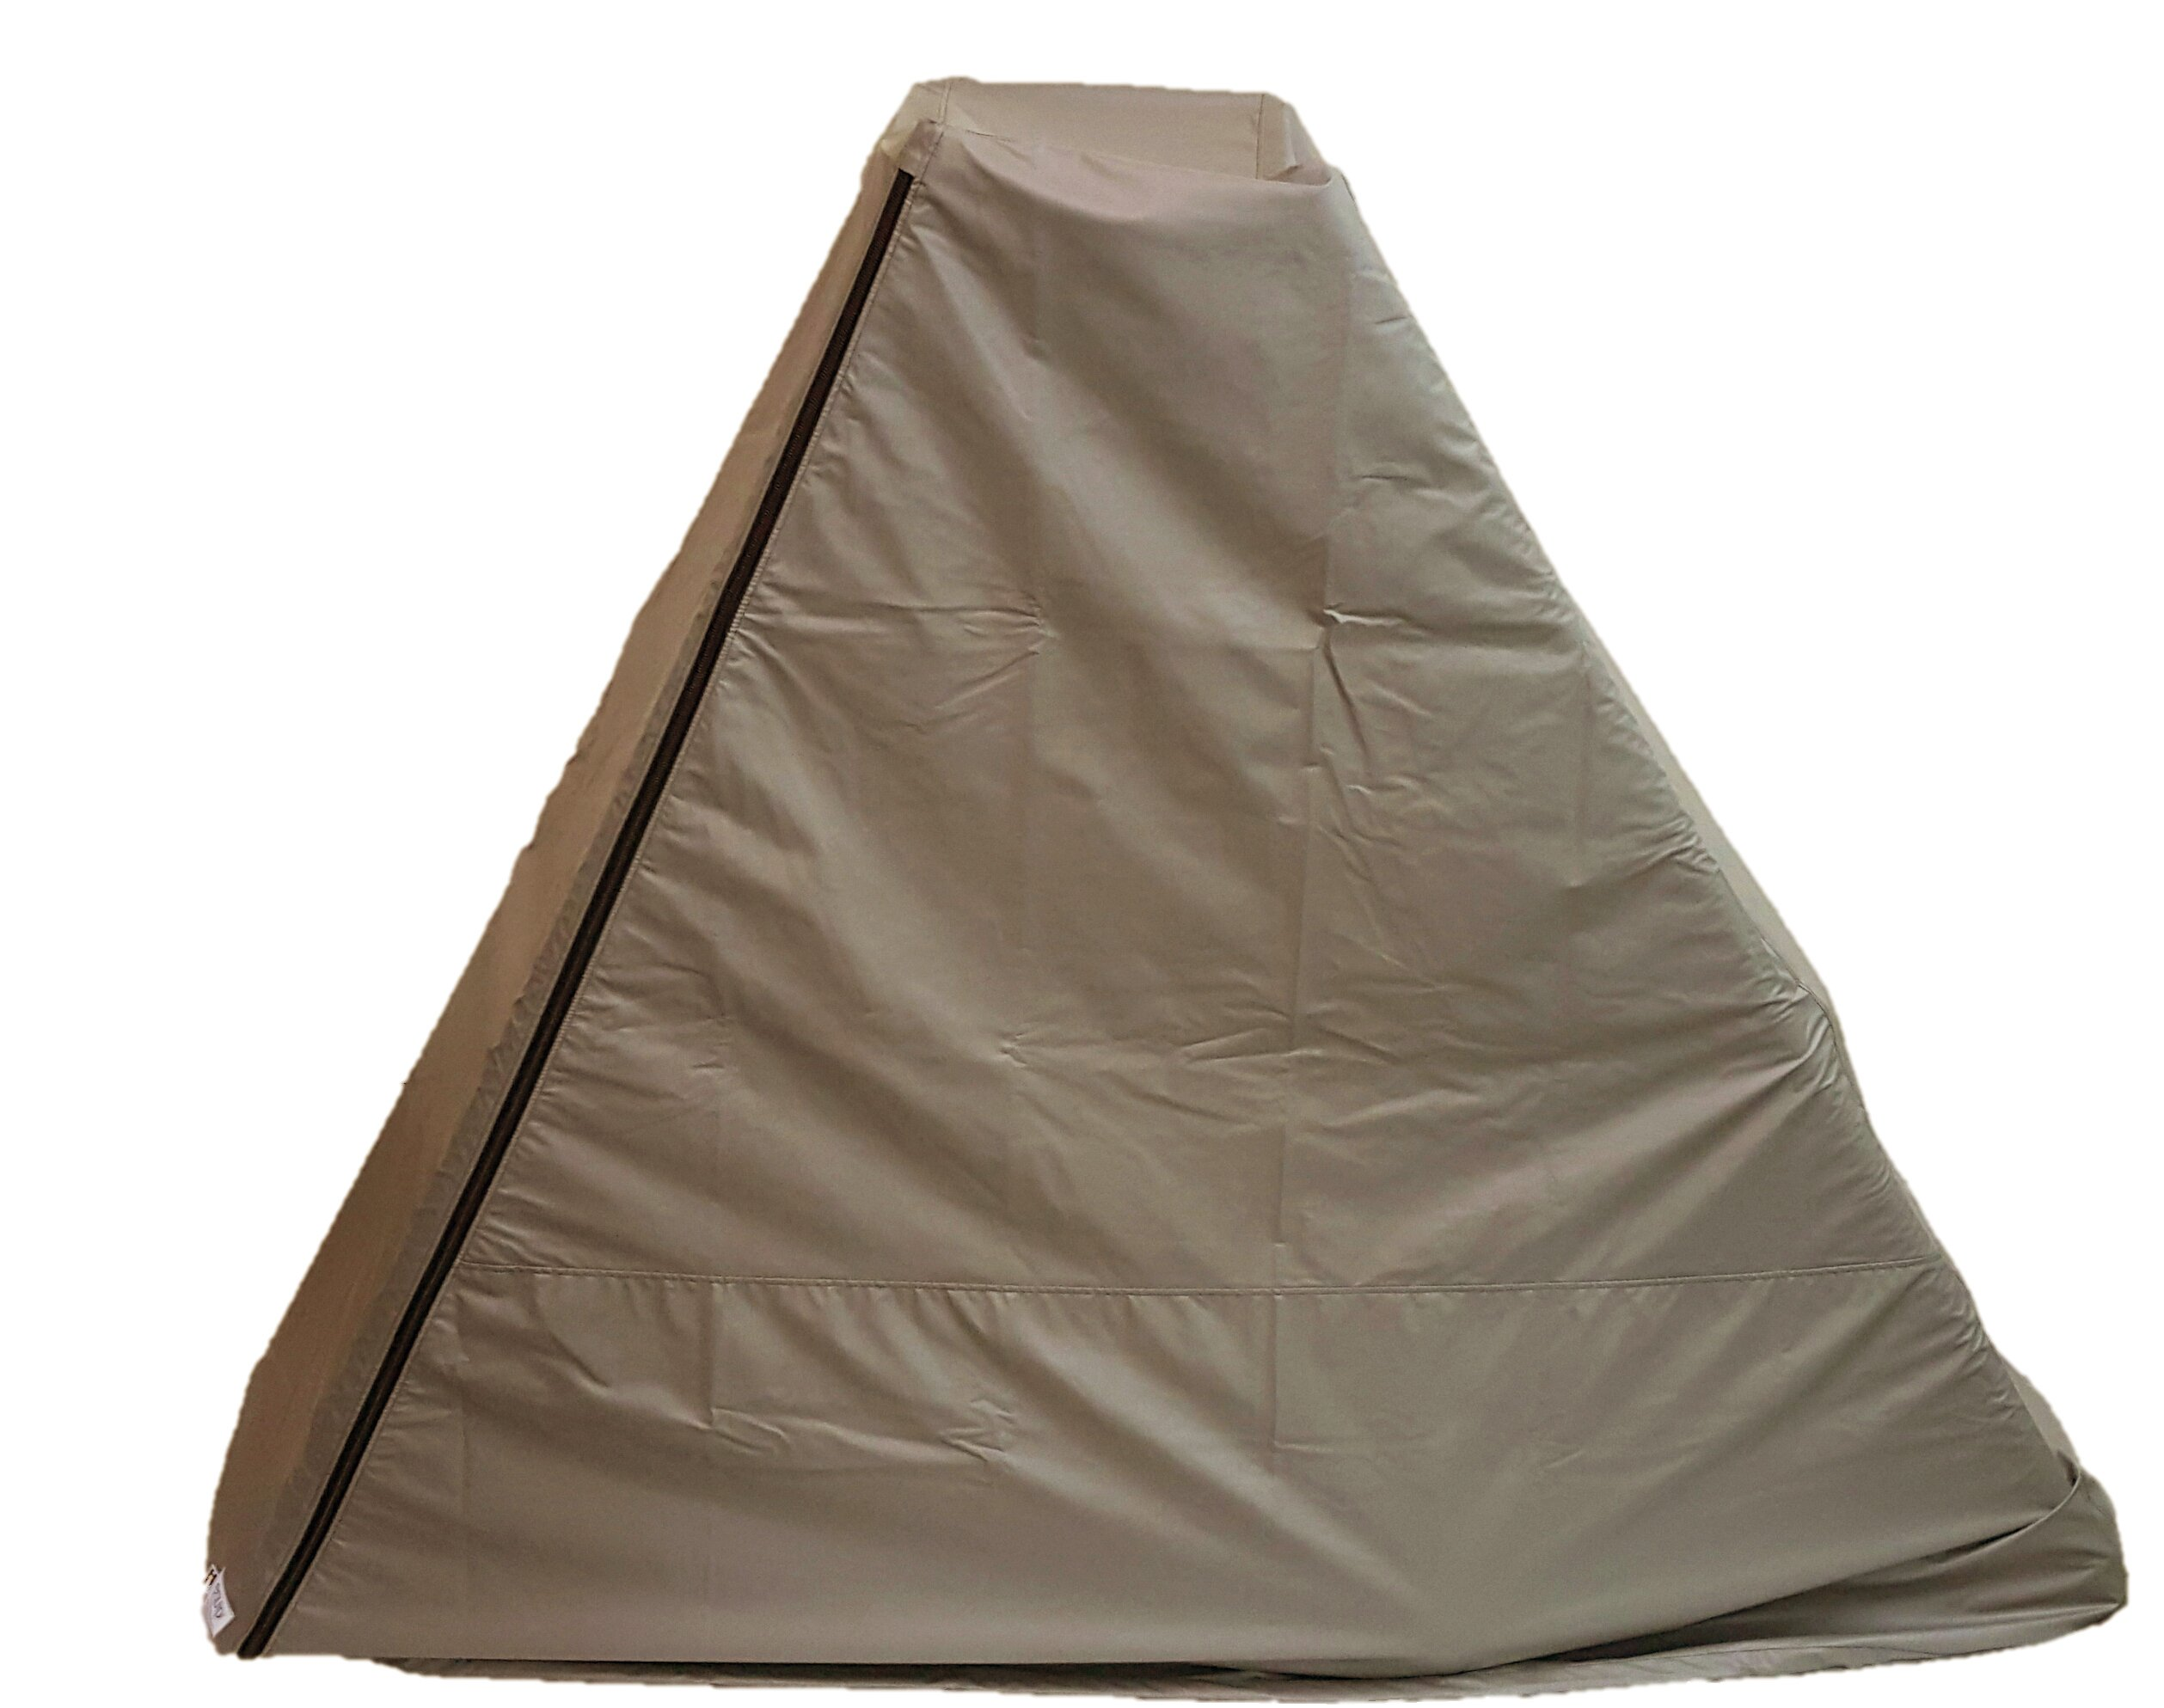 The Best Elliptical Machine Cover | Front Drive. Heavy Duty Fitness Equipment Protective Covers Ideal for Indoor or Outdoor Use. Made in USA with 3-Year Warranty. (Tan, Large Extra Tall)